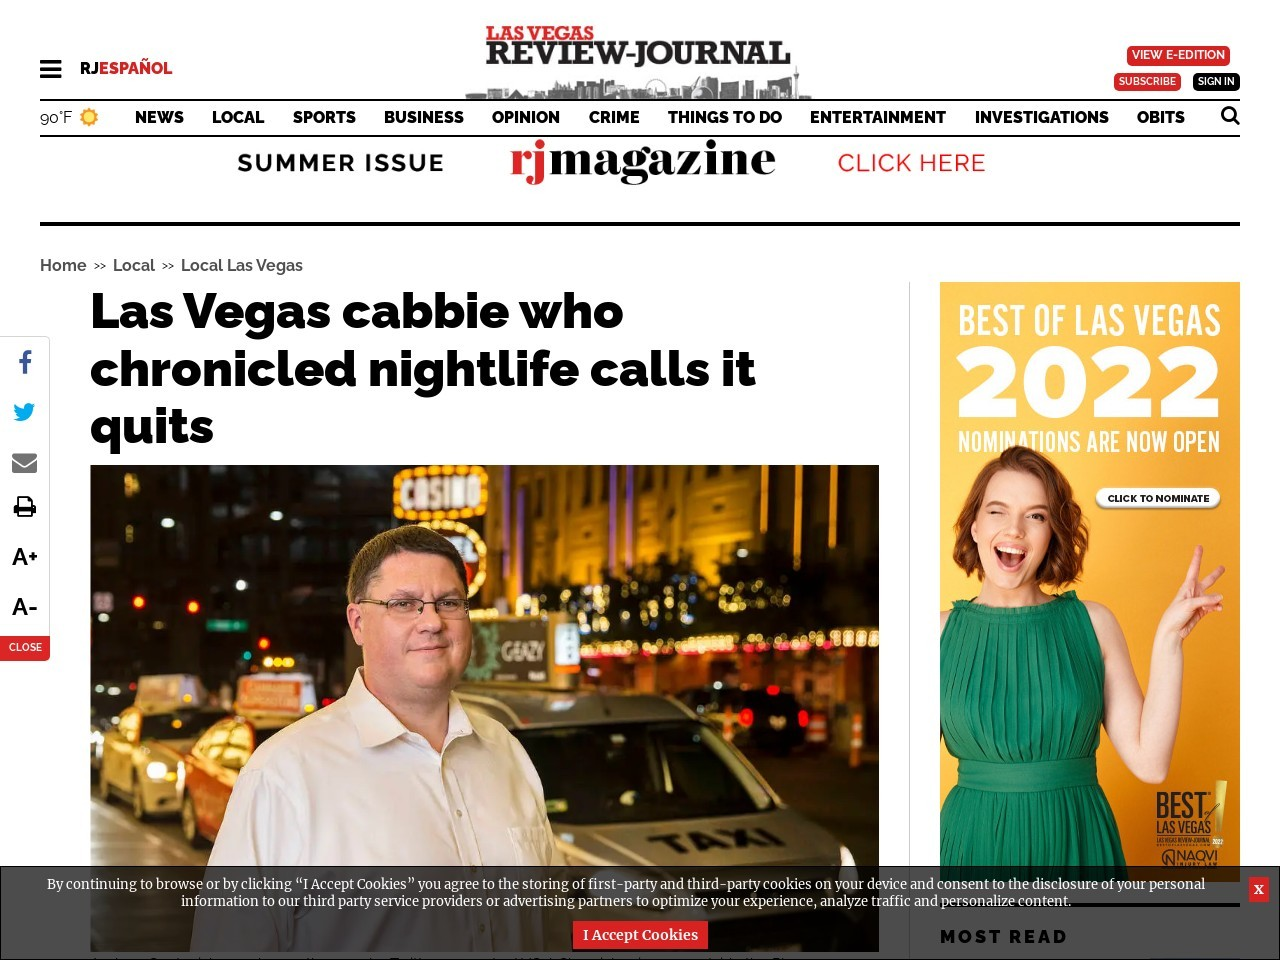 Las Vegas cabbie who chronicled nightlife calls it quits